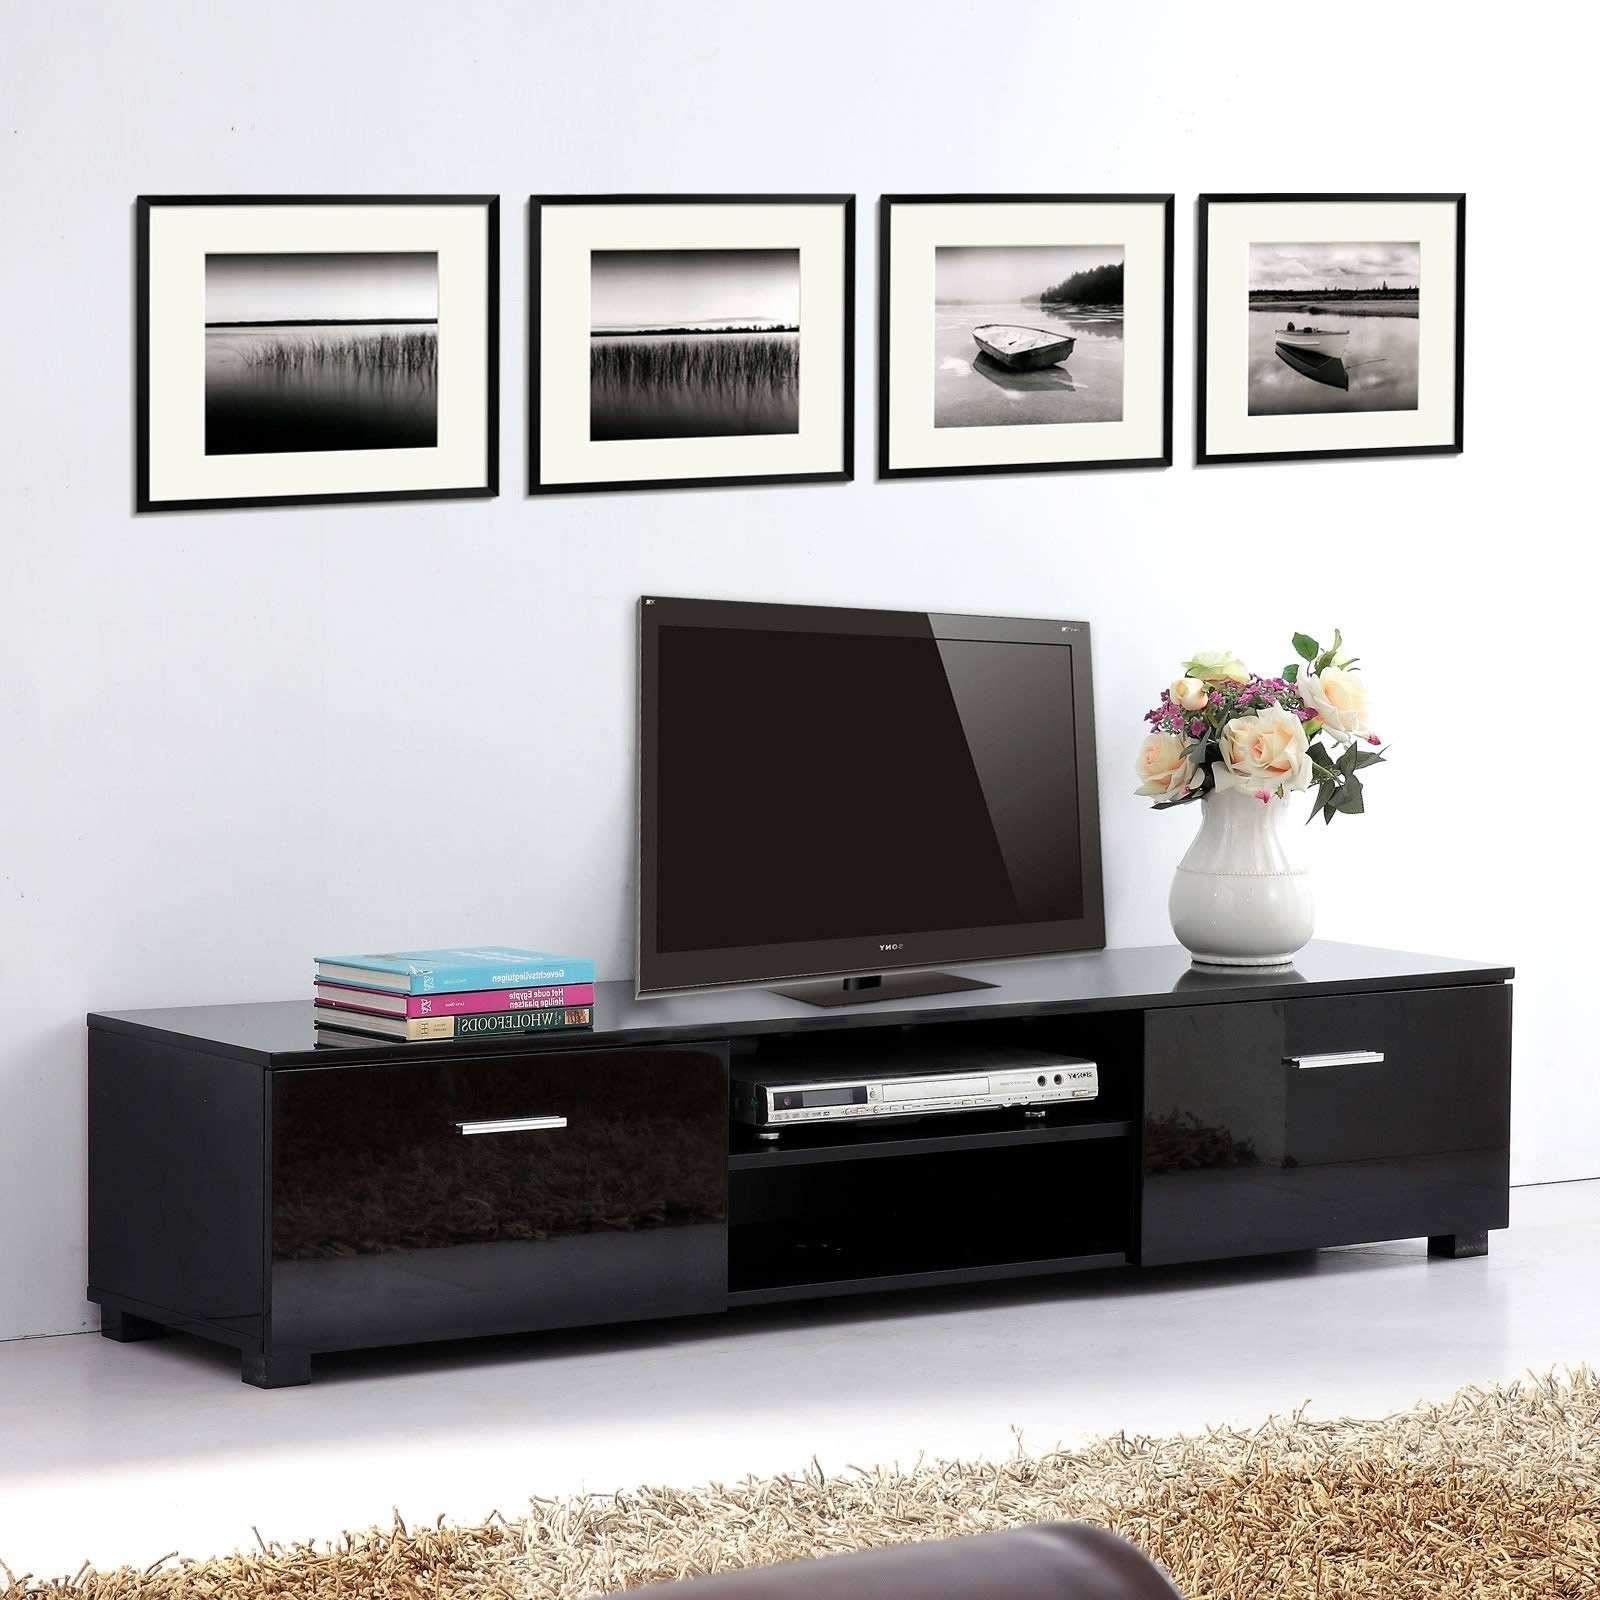 Tv Stands Adjustable Height Tall Stand With Mount Thin Wood Intended For Long Wood Tv Stands (View 11 of 15)